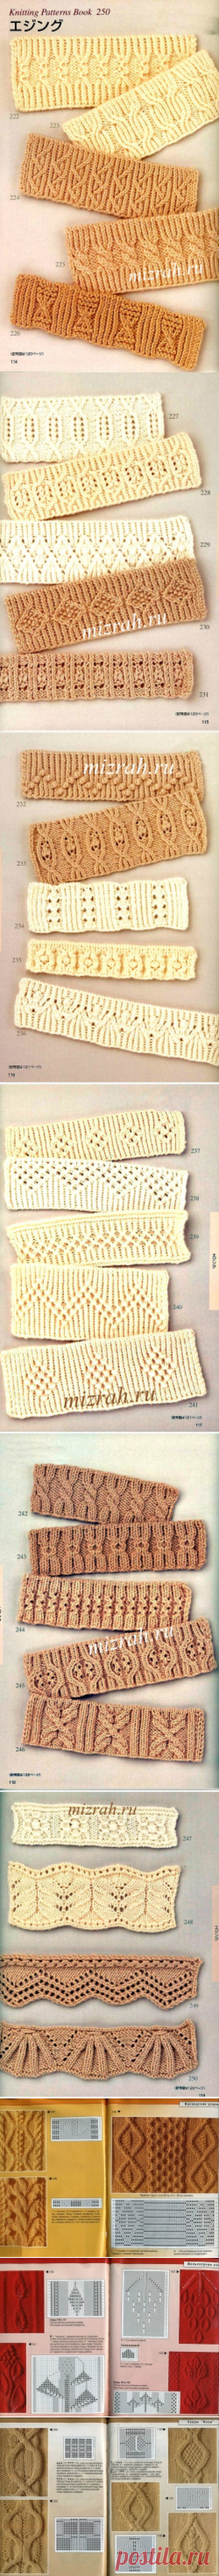 "Country of knitting ""Ярния"". It is A LOT OF PATTERNS - Arana, braids, plaits. Volume - SPOKES."